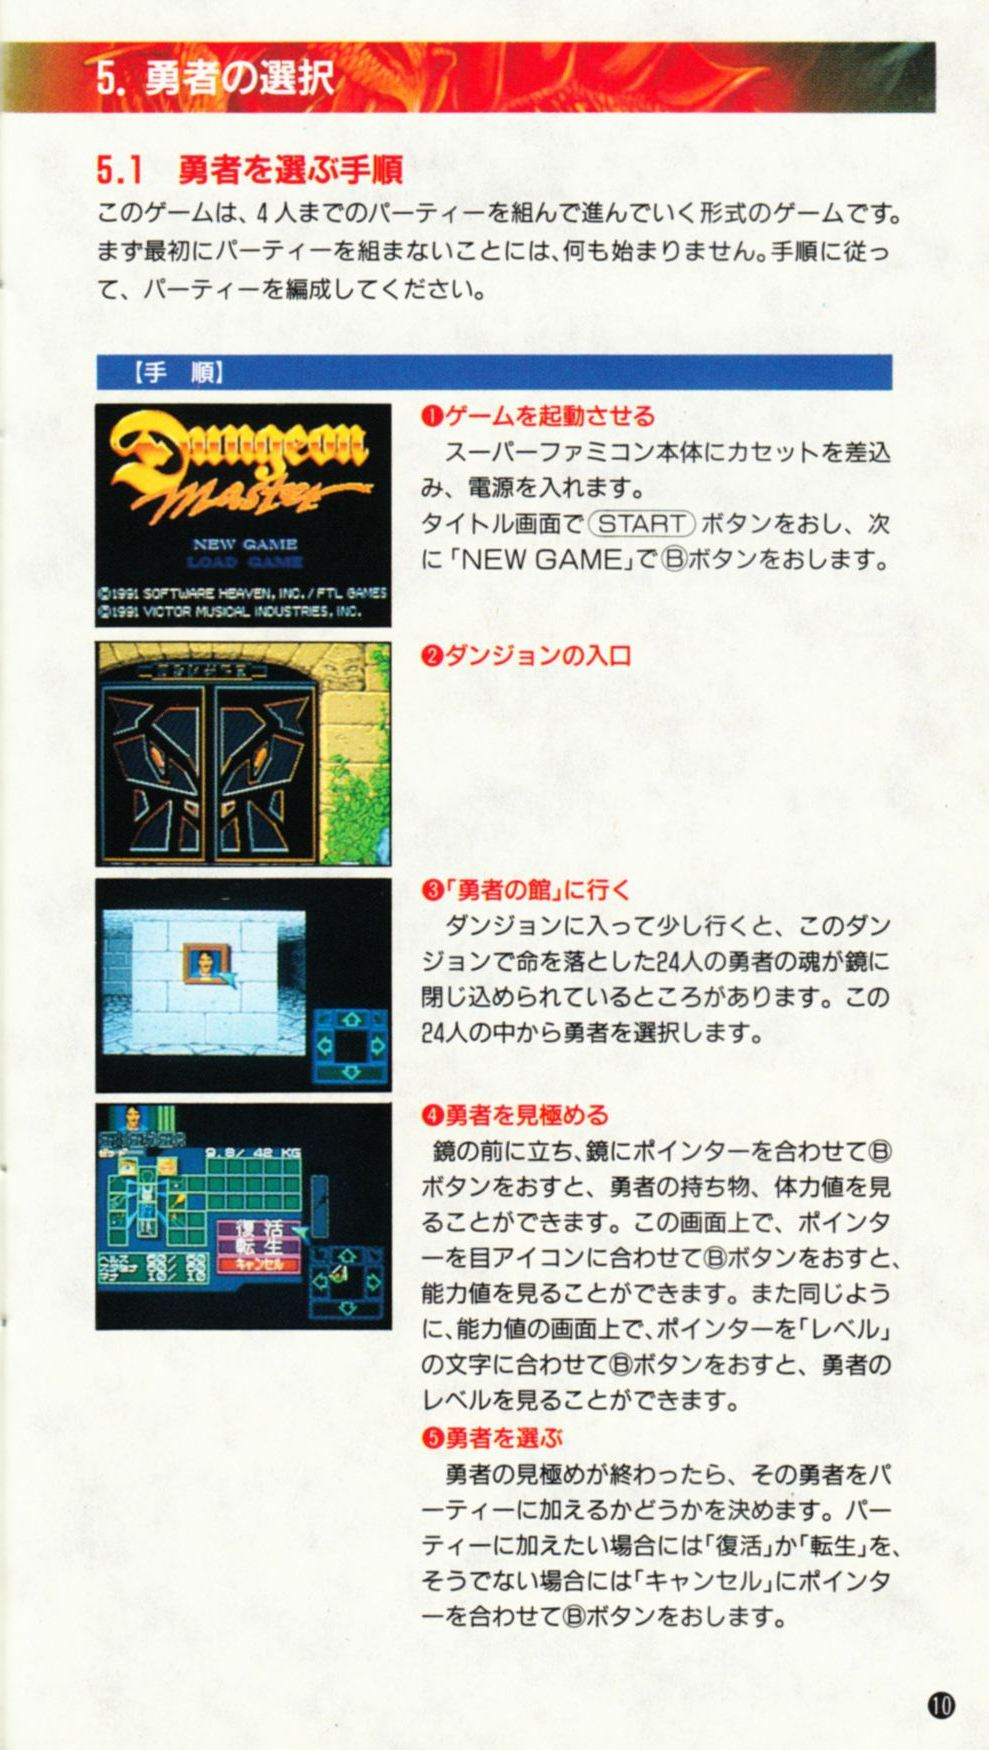 Game - Dungeon Master - JP - Super Famicom - Manual - Page 013 - Scan